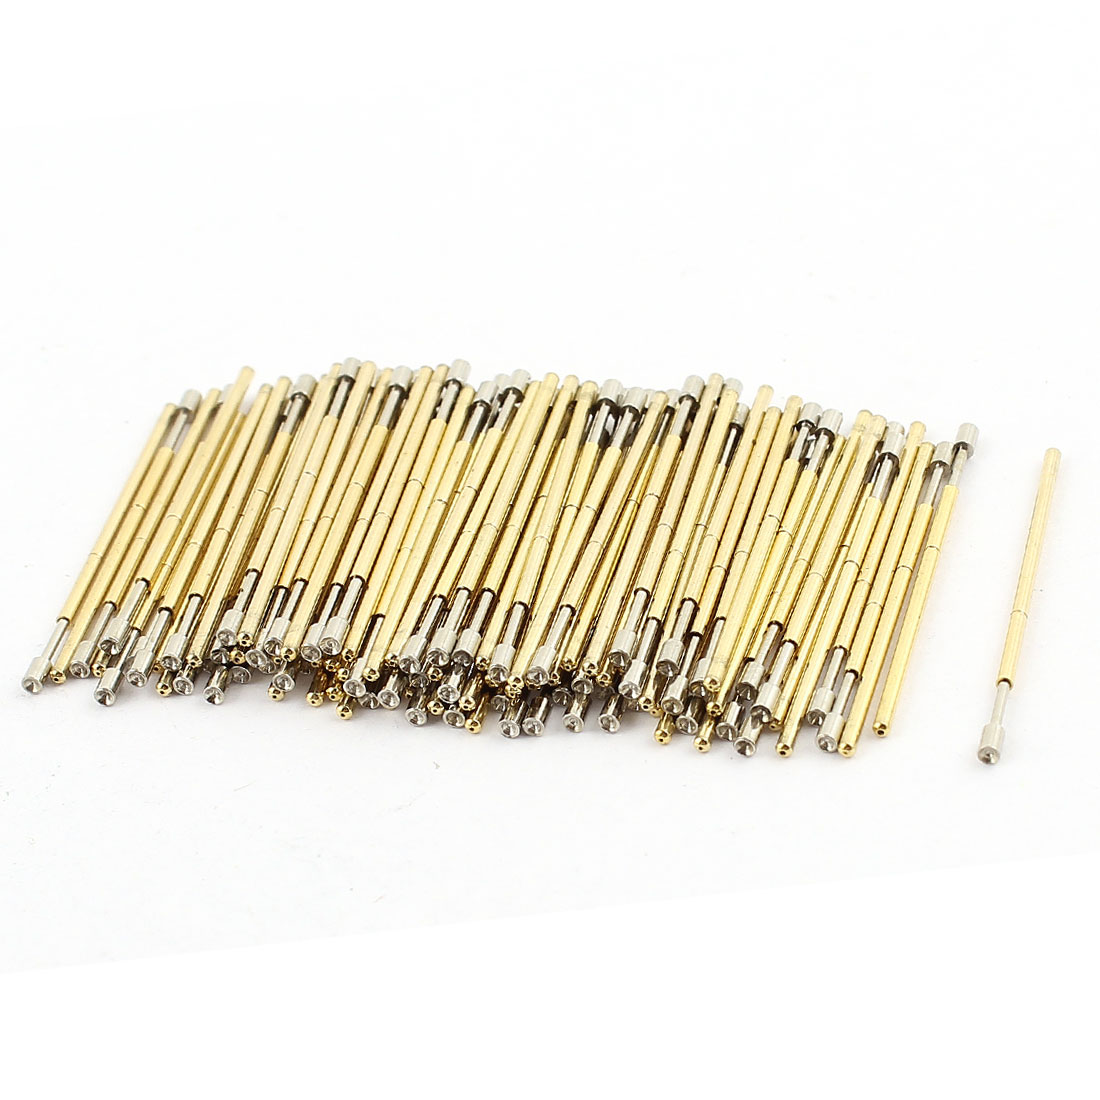 100 Pieces PM75-A2 Dia 1.02mm 120g Spring Loaded Test Probe Pin